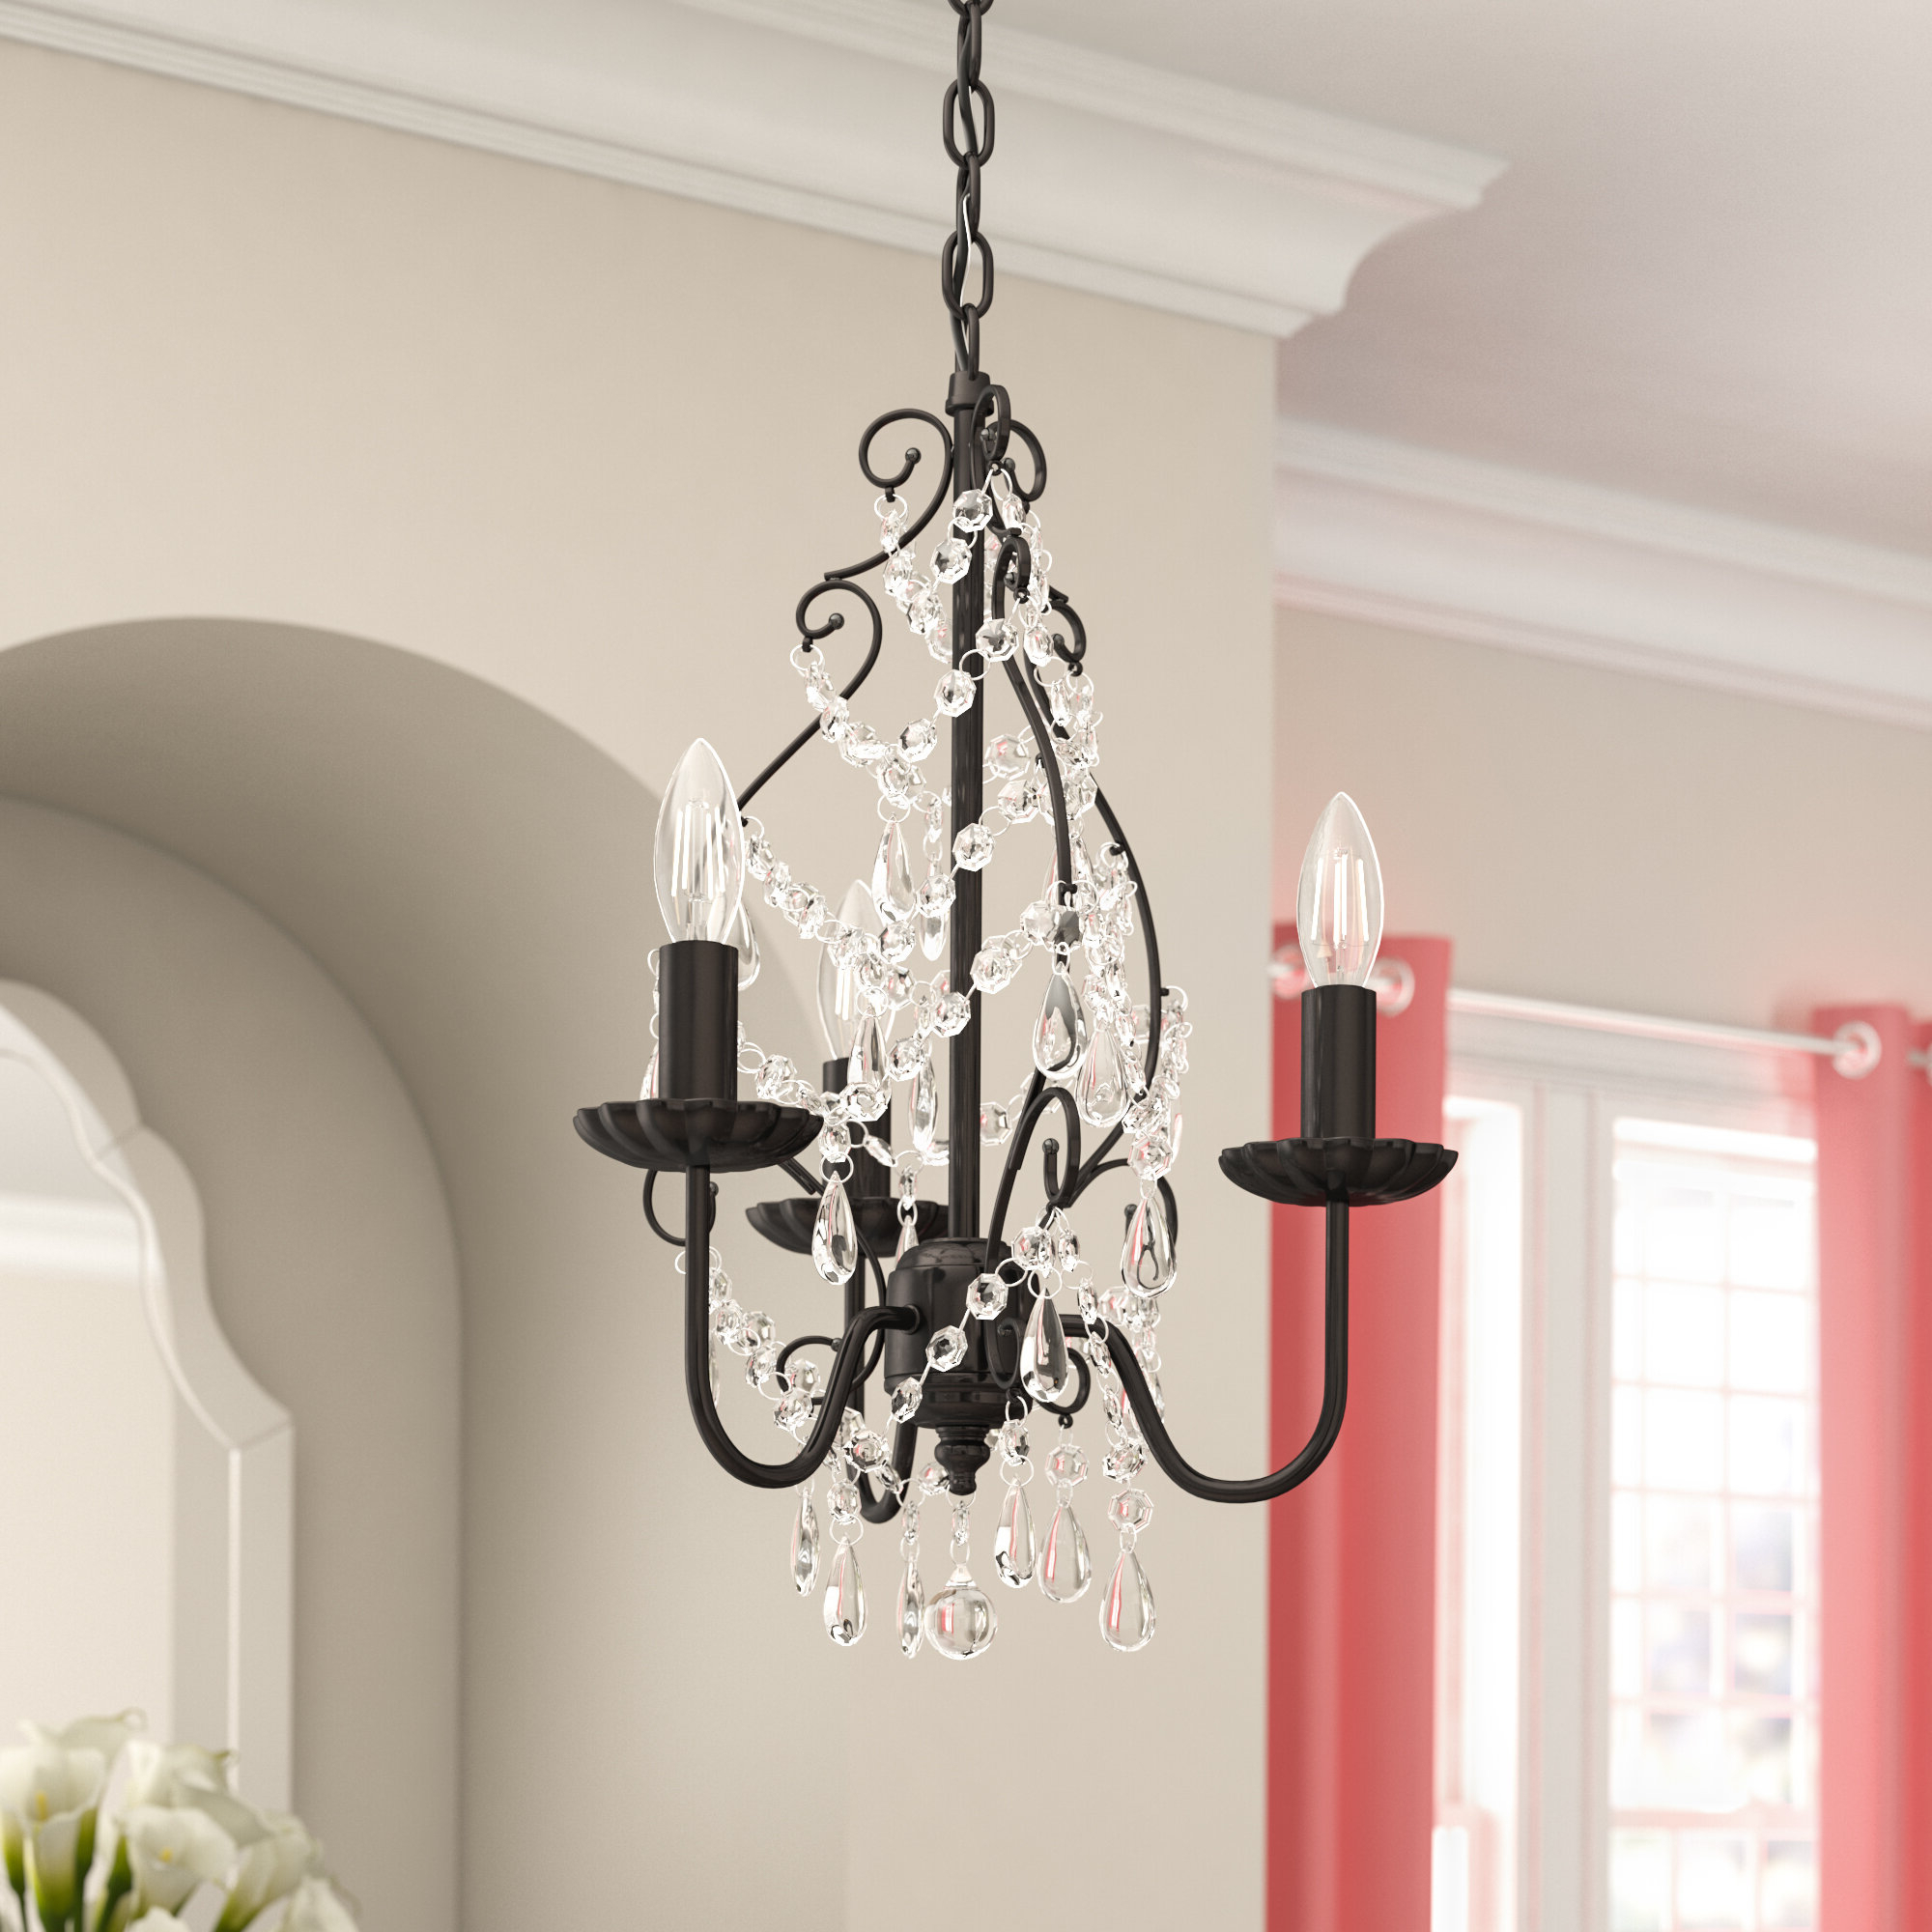 Trendy Blanchette 5 Light Candle Style Chandeliers With Archway 3 Light Candle Style Chandelier (View 19 of 20)